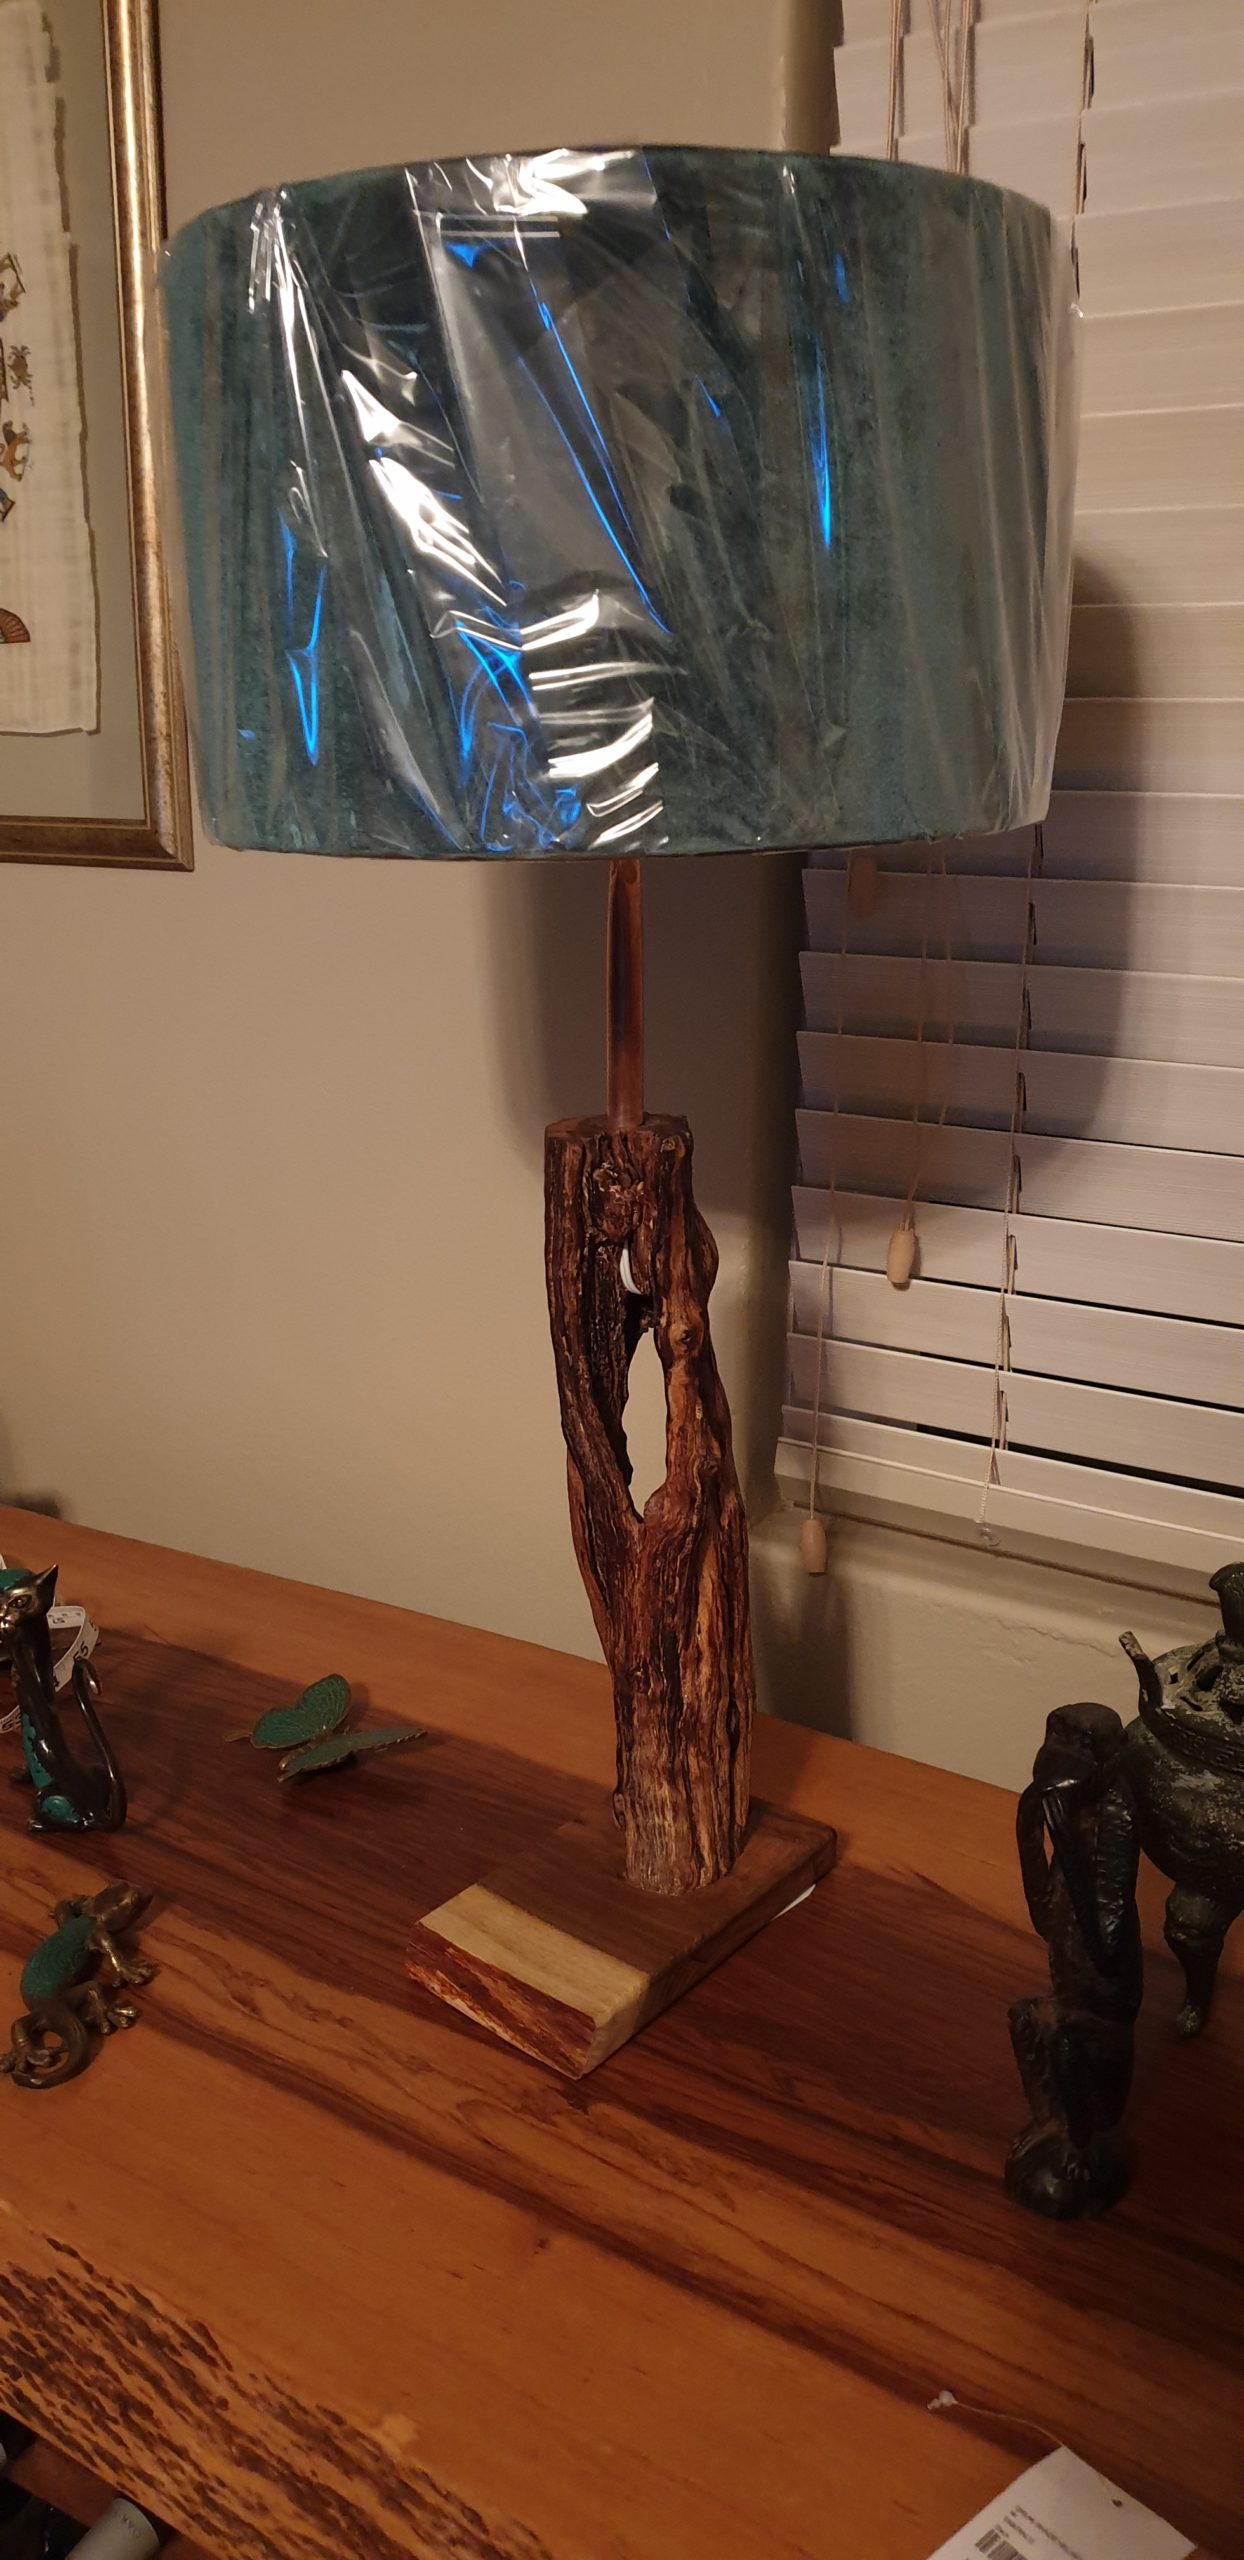 My firewood lamp.